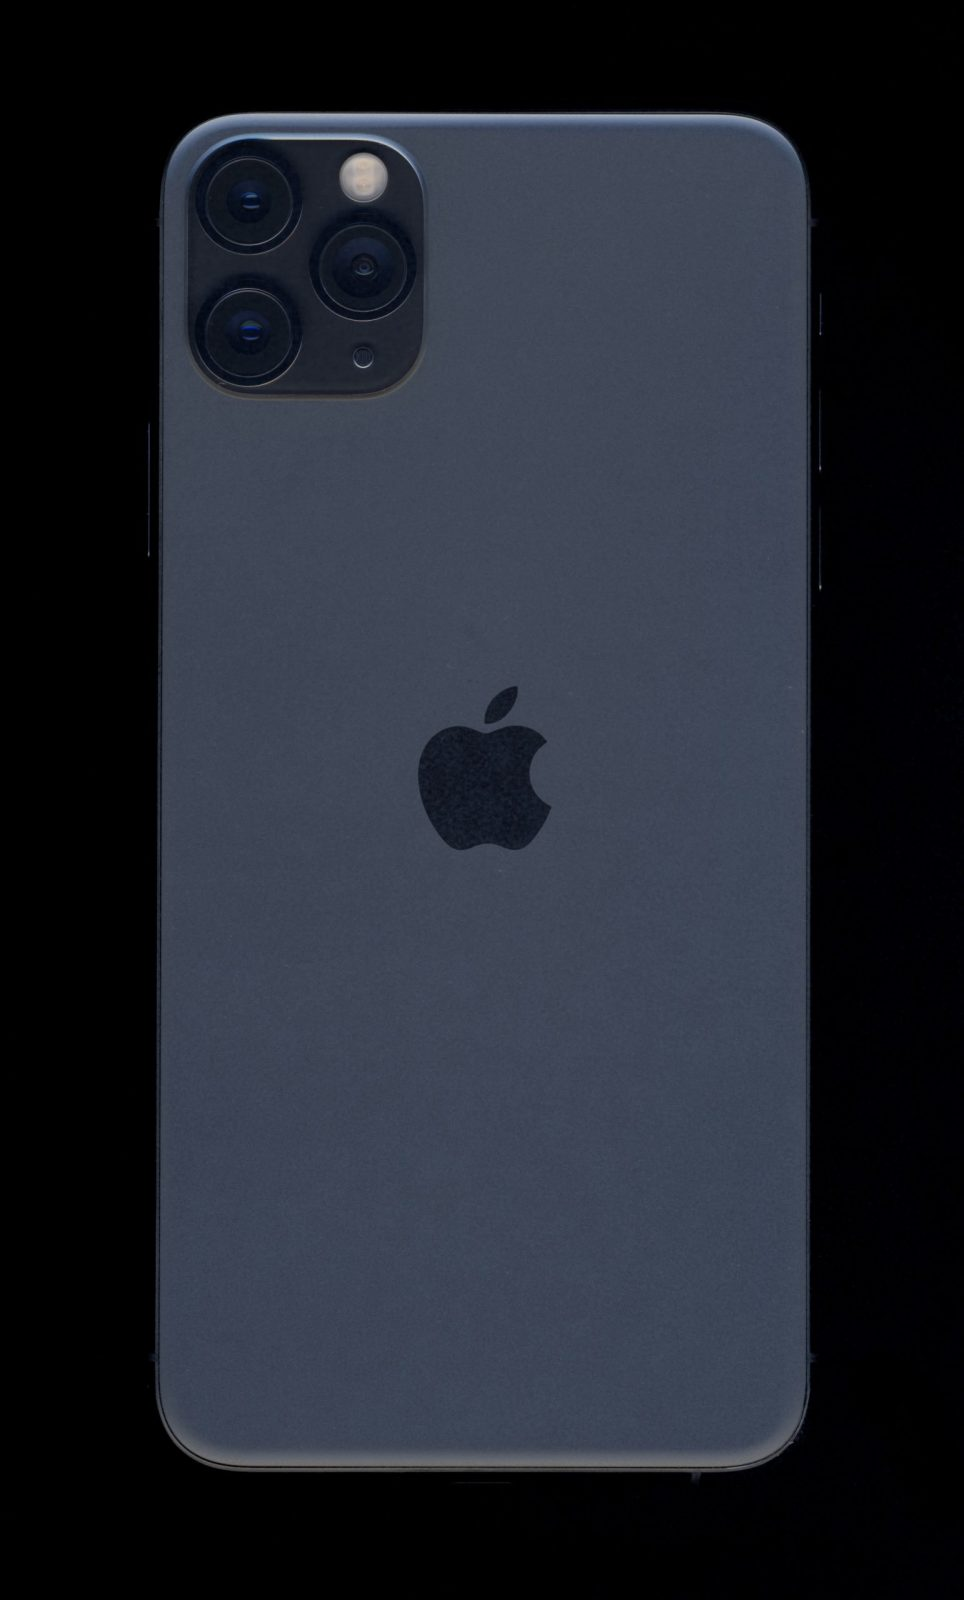 iPhone 11 Pro Max in space grey color